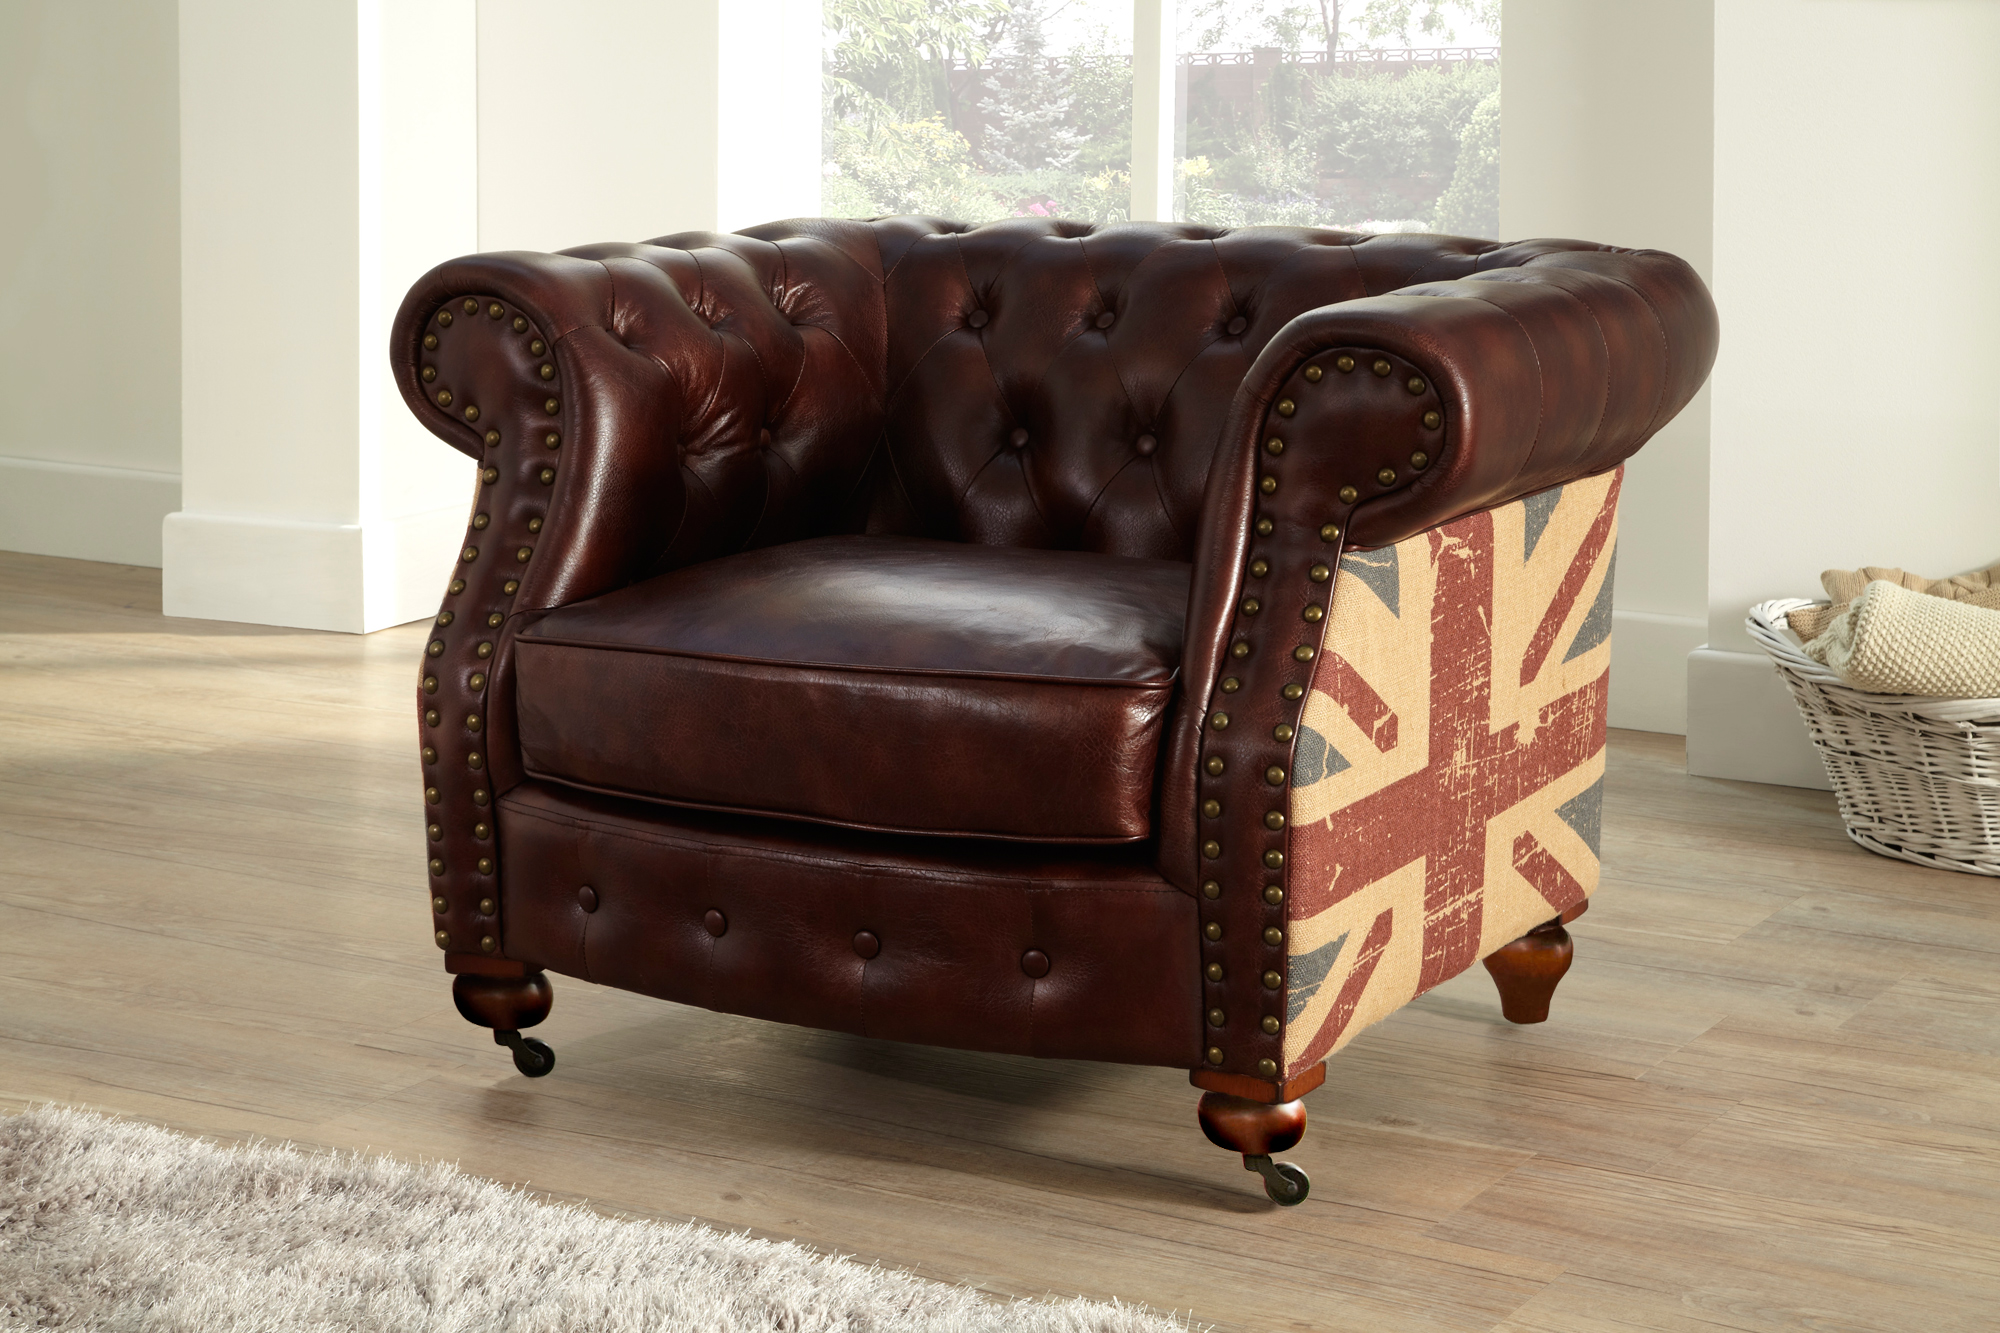 Chesterfield flag 1 seater leather sofa brown ebay for Leather studded couch